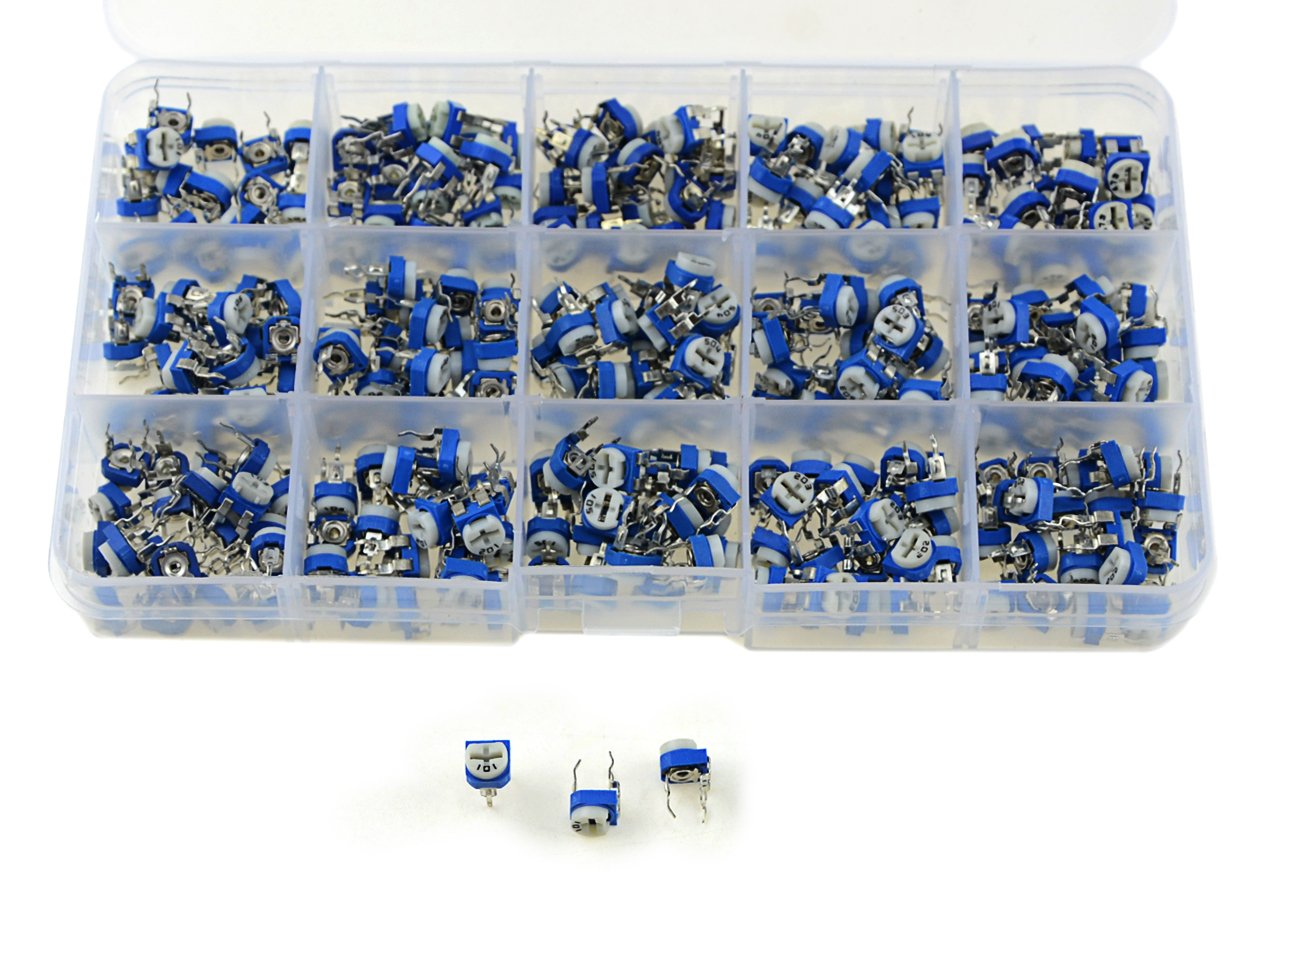 20pcs for each Value XLX 150PCS 1//10 Watt 100 to 1M Ohm Variable Resistor Trimmer Potentiometer Assorted Kit 15 Values with storage box